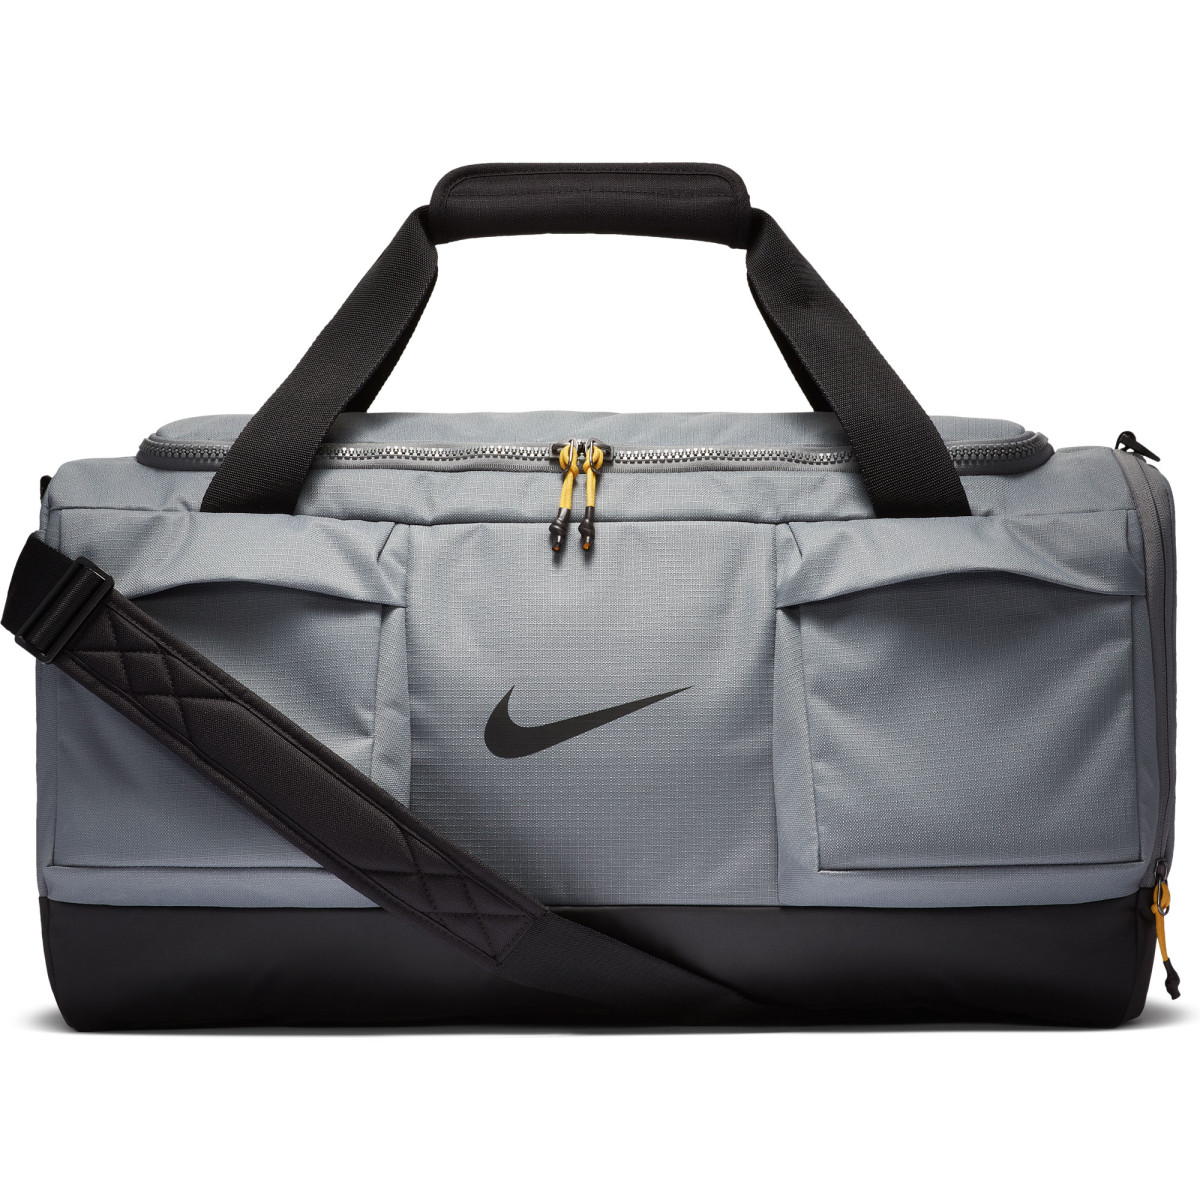 Nike Sports Duffle Bag